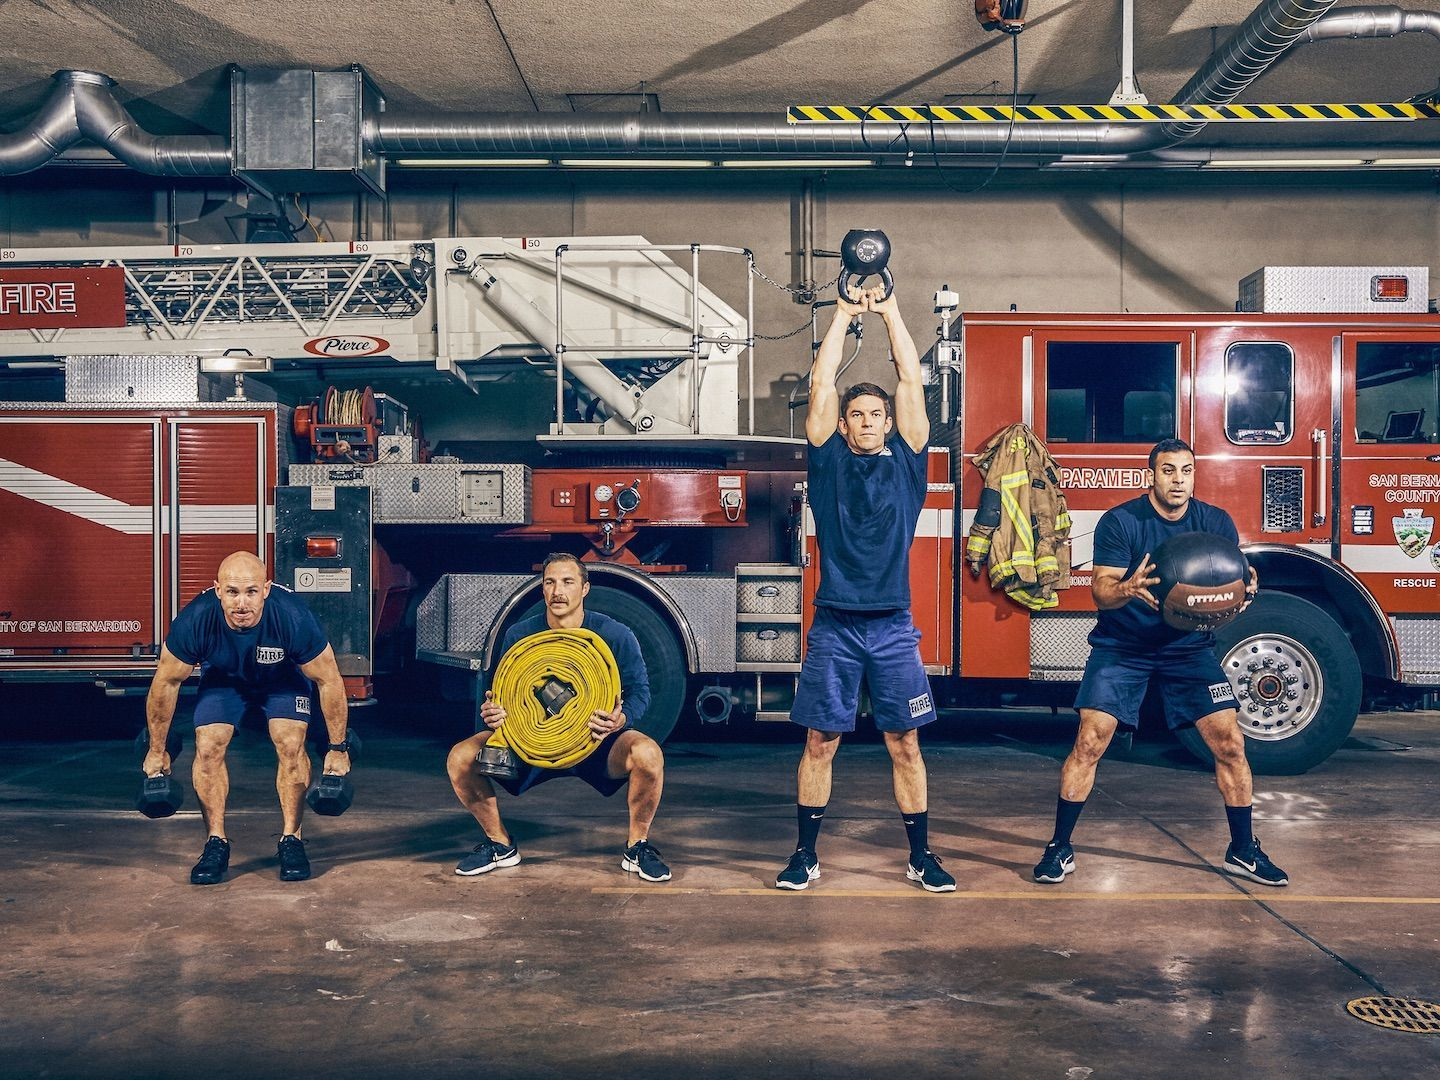 How Firefighters Are Crushing Workouts to Make Saving Lives Easier